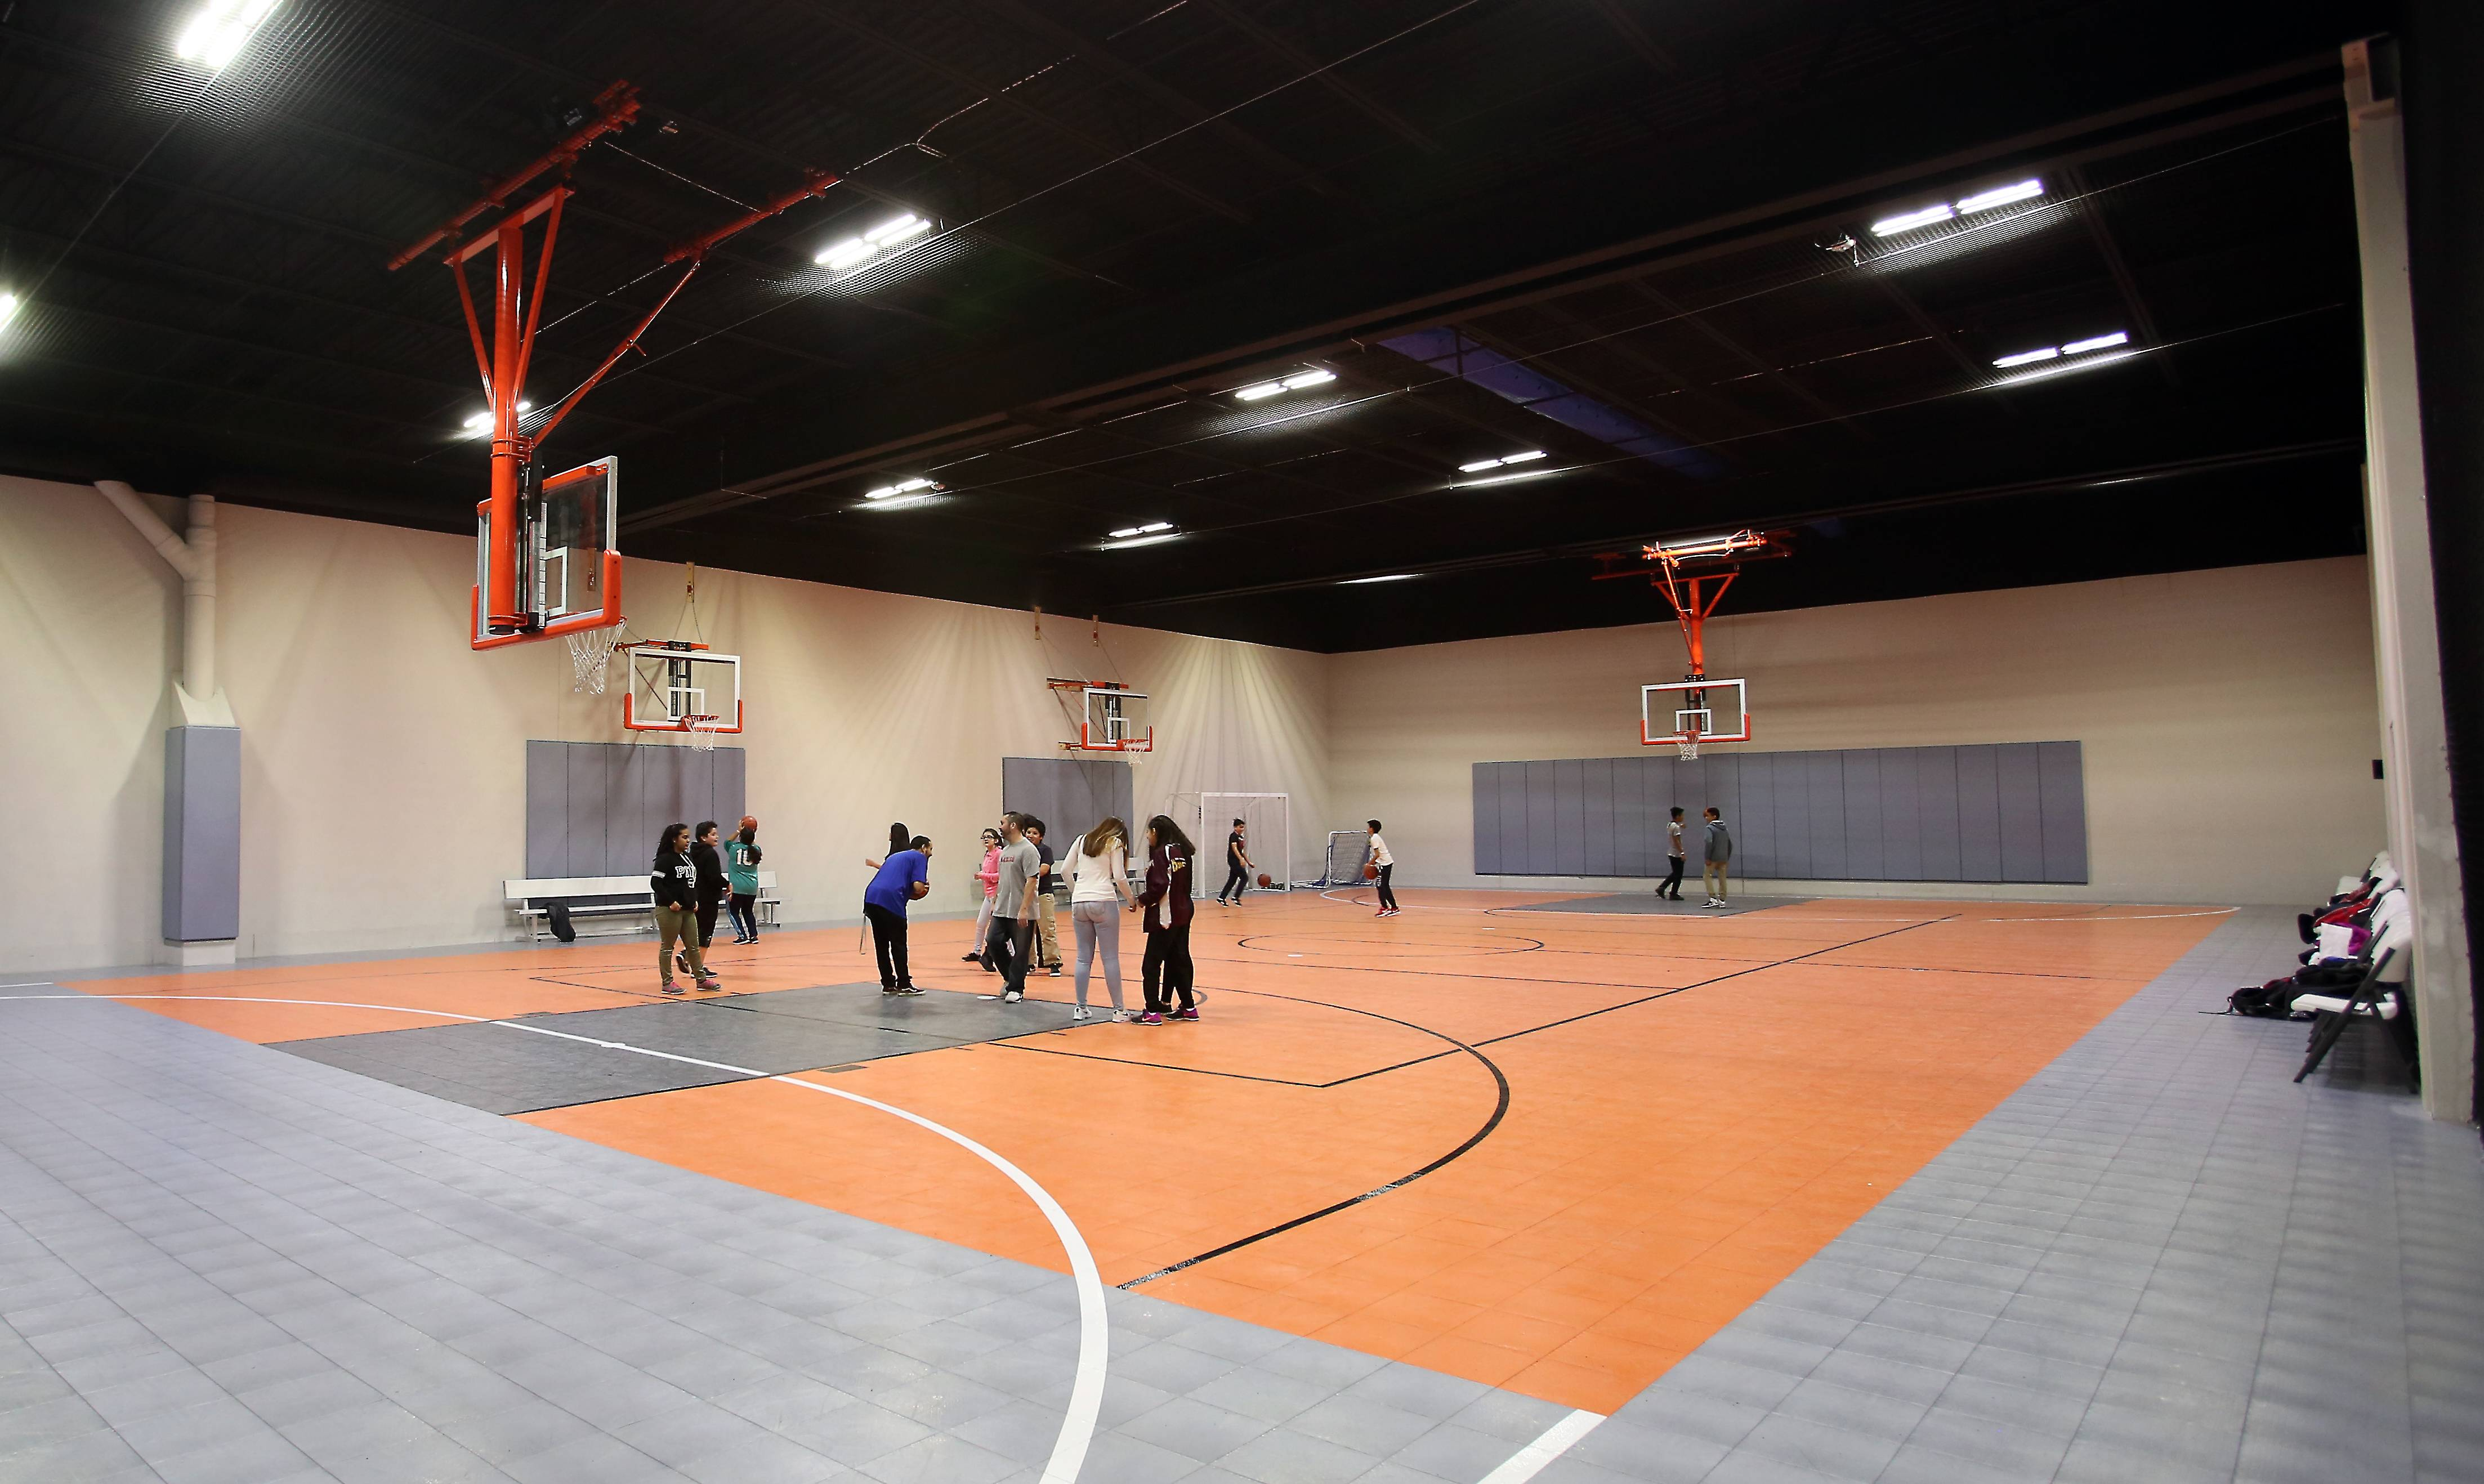 Students play on of the basketball courts at LifeZone 360, the highly anticipated new sports complex in West Dundee.